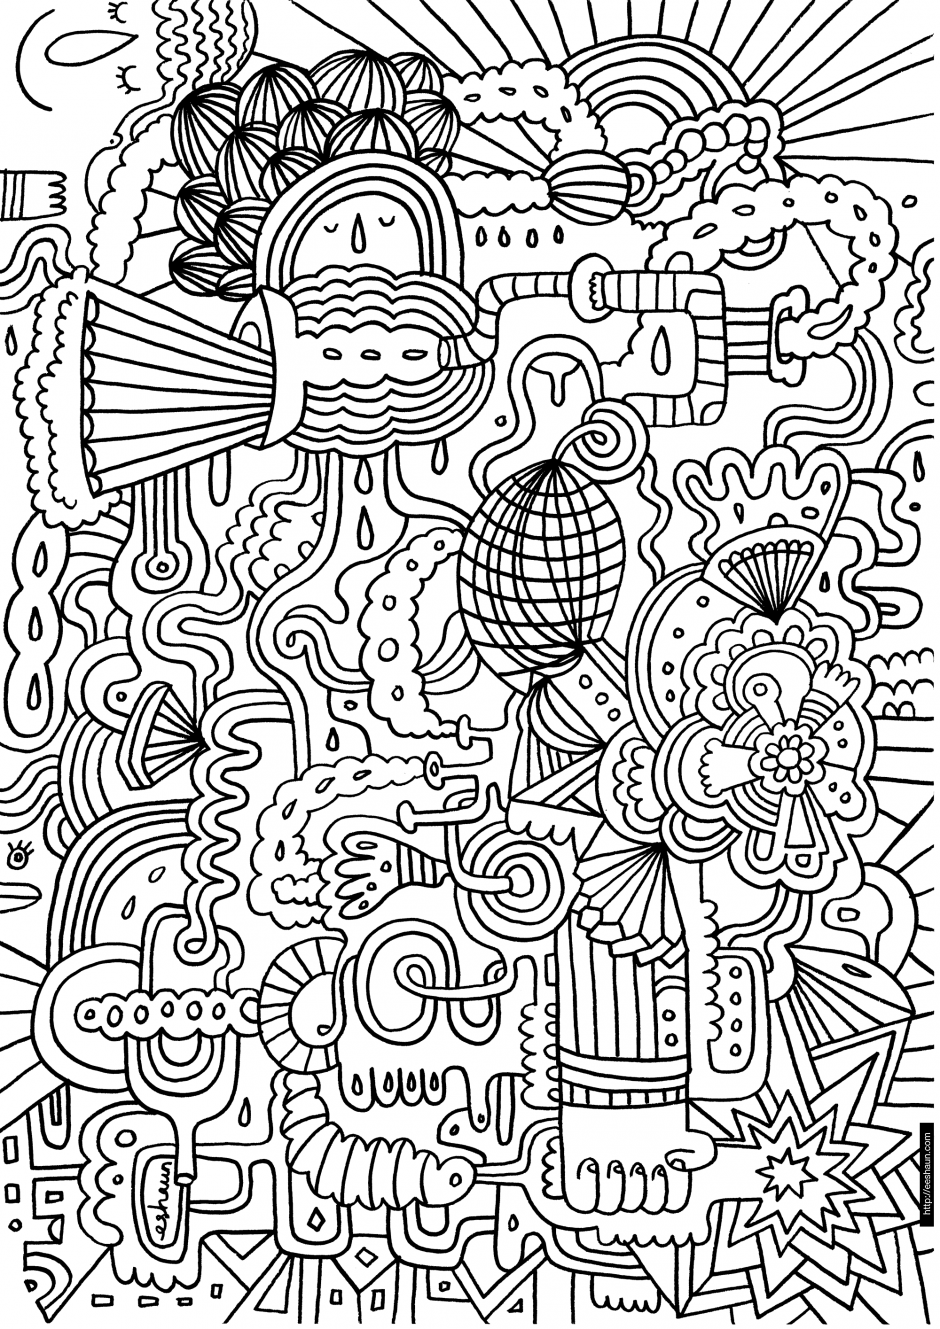 Hard mandala coloring pages for adults - Coloring Pages Of Flowers For Teenagers Difficult Only Coloring Pages